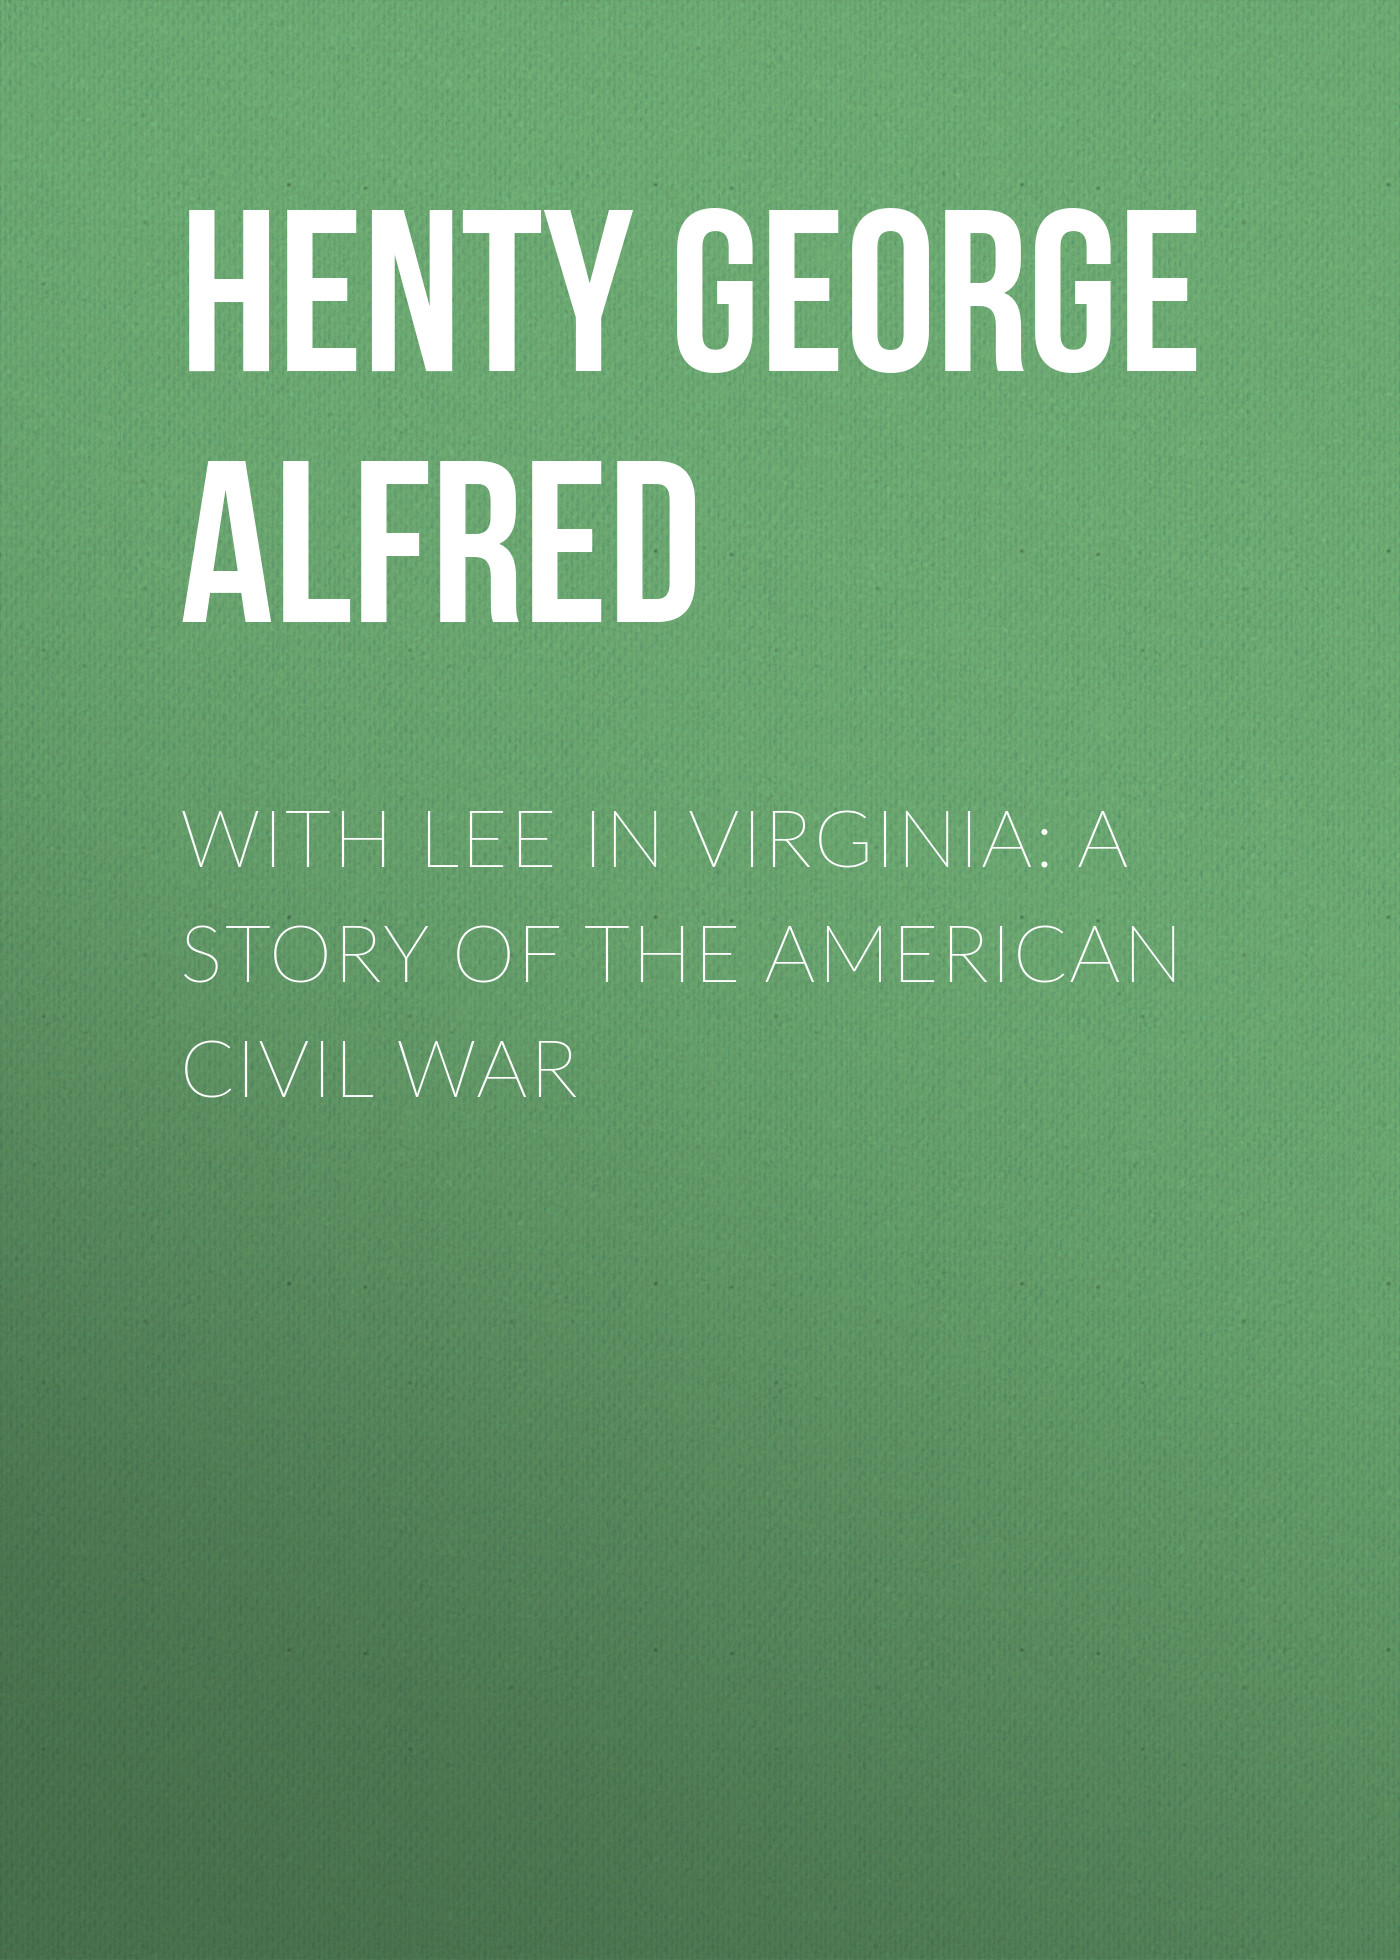 Henty George Alfred With Lee in Virginia: A Story of the American Civil War